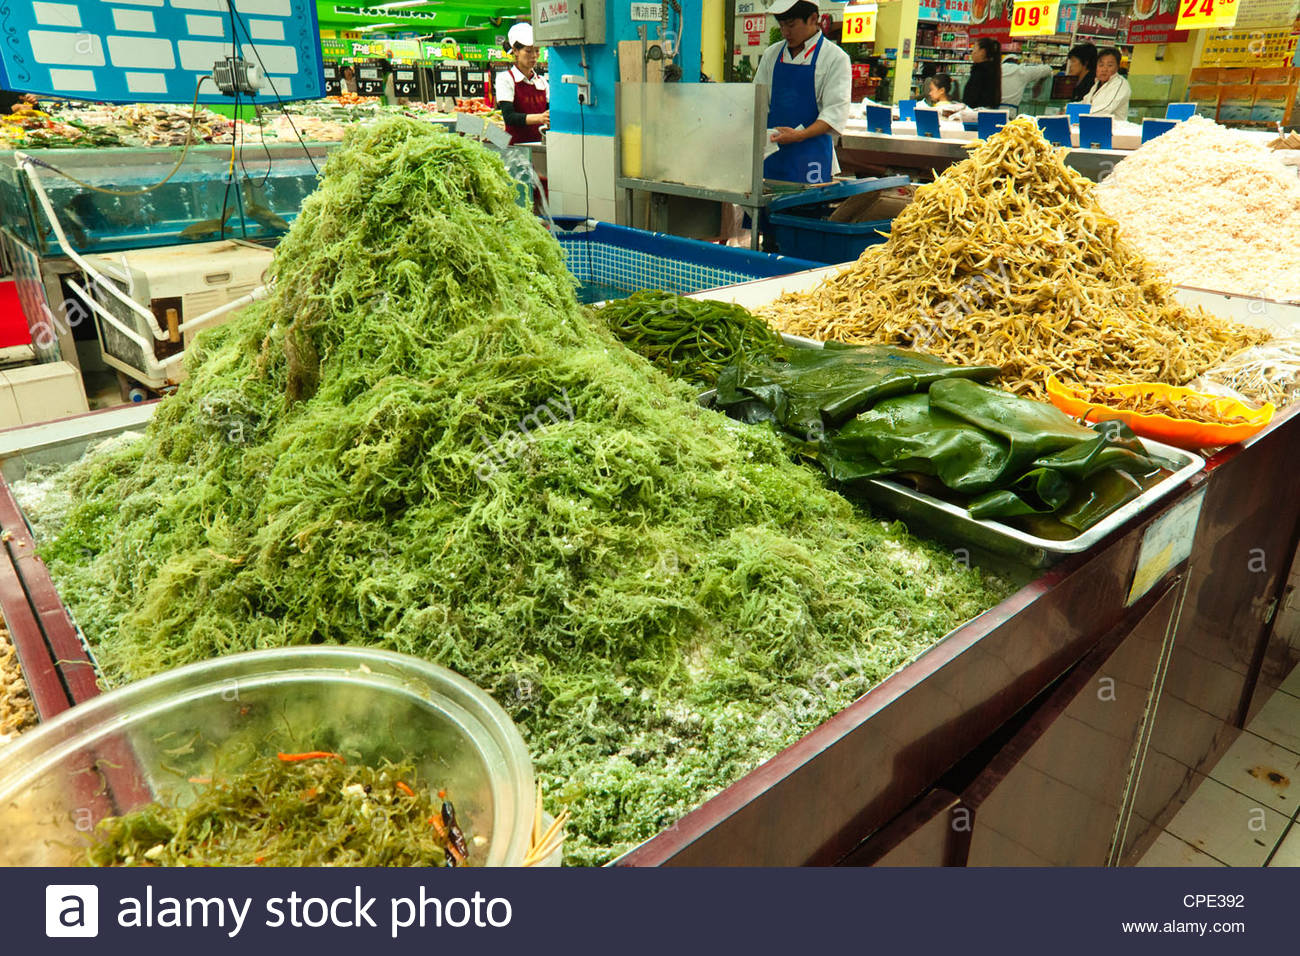 Kelp and other sea products in a local grocery store, Beijing, China, Asia - Stock Image